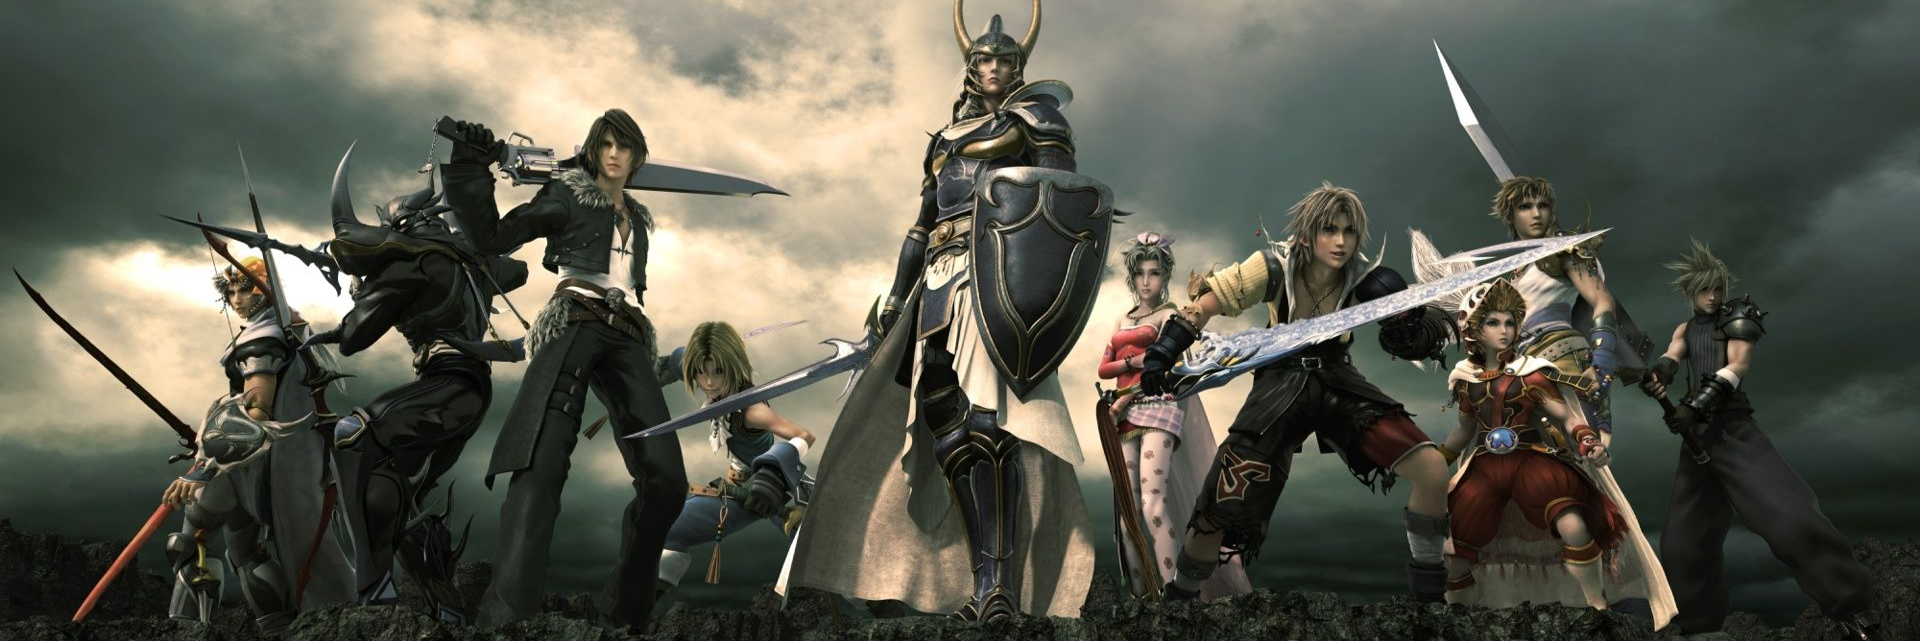 Top 10 Role-Playing Video Games Of All Time